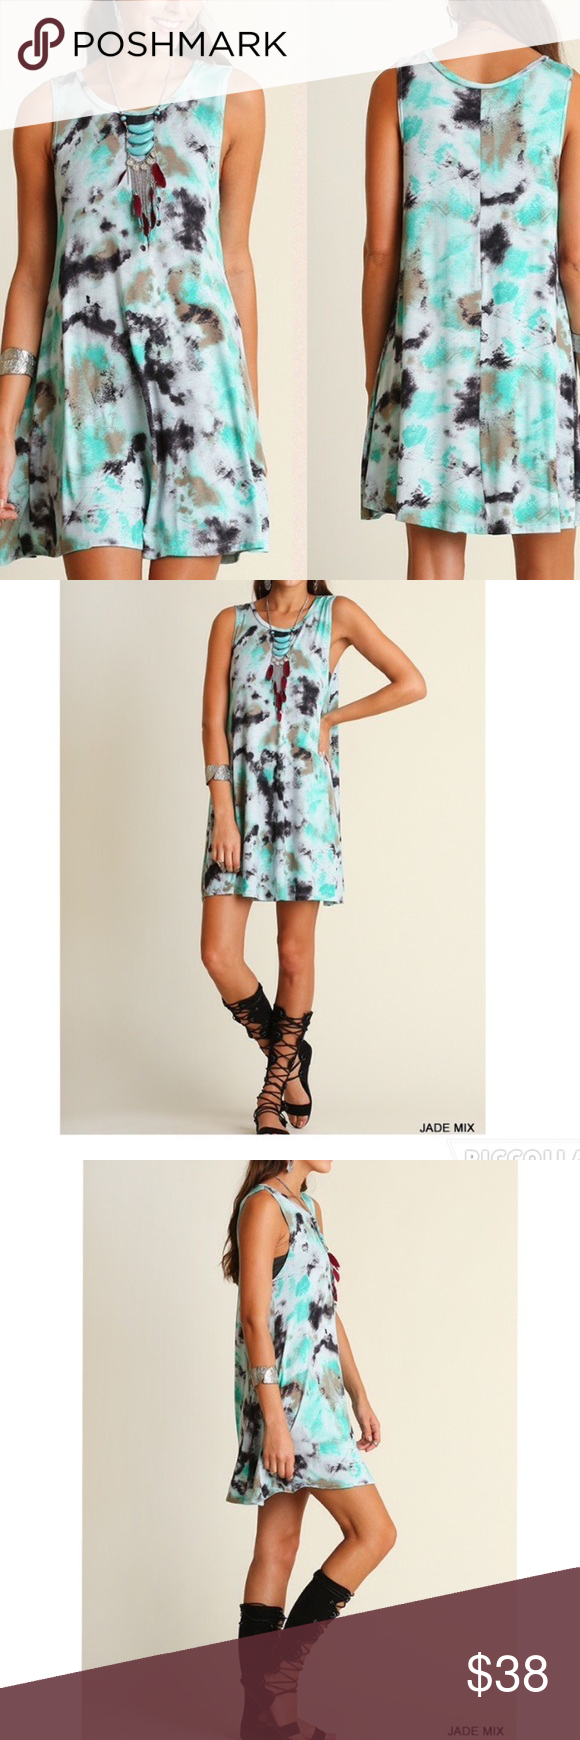 "ARRIVAL! Tie dye print sleeveless jade dress BRAND NEW Sleeveless tie dye swing dress  Non-sheer. Unlined. Lightweight. Material: 95% rayon, 5% spandex Comfortable, loose fit, flowing dress that's perfect for summer!   Measurements:  Small: Armpit to Armpit: 20"" Length: 34""  Medium: Armpit to Armpit : 21"" Length: 34.5""  Large: Armpit to Armpit: 21.5"" Length: 35"" Pink Peplum Boutique Dresses"